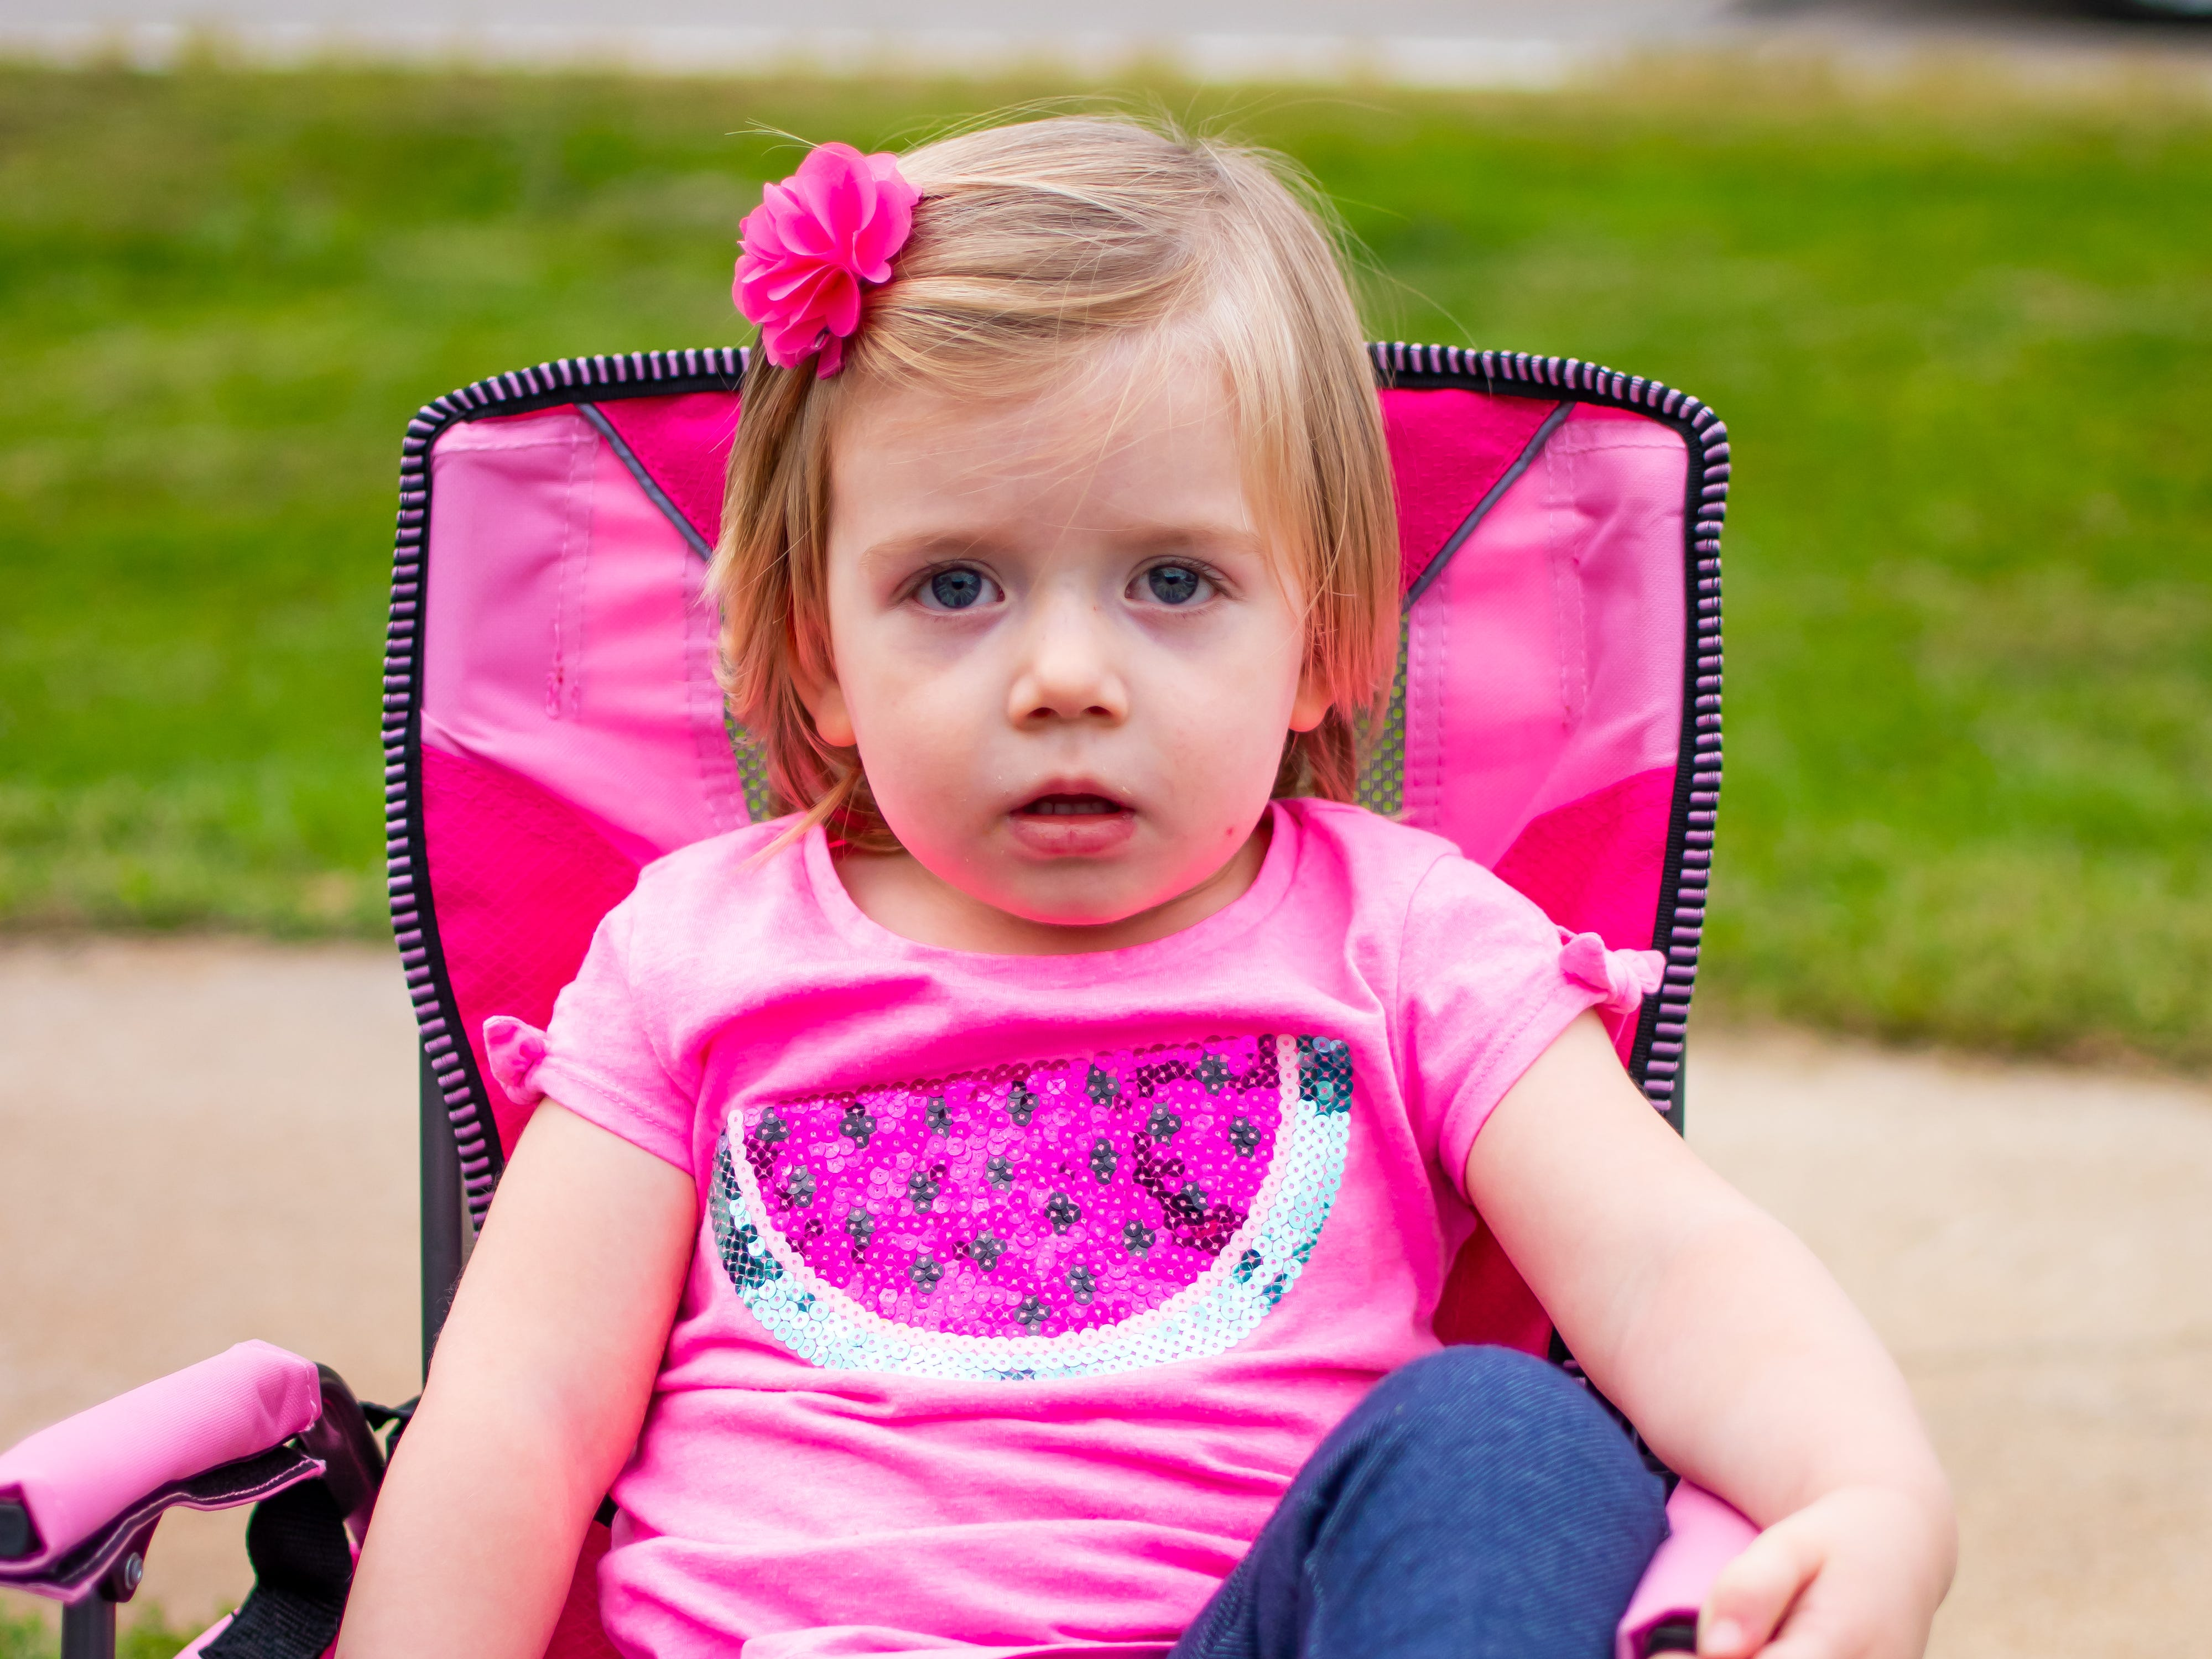 Nora Miller, 2, of Waukee waits  for the Waukee Homecoming Parade on Thursday, September 27, 2018 in Waukee.